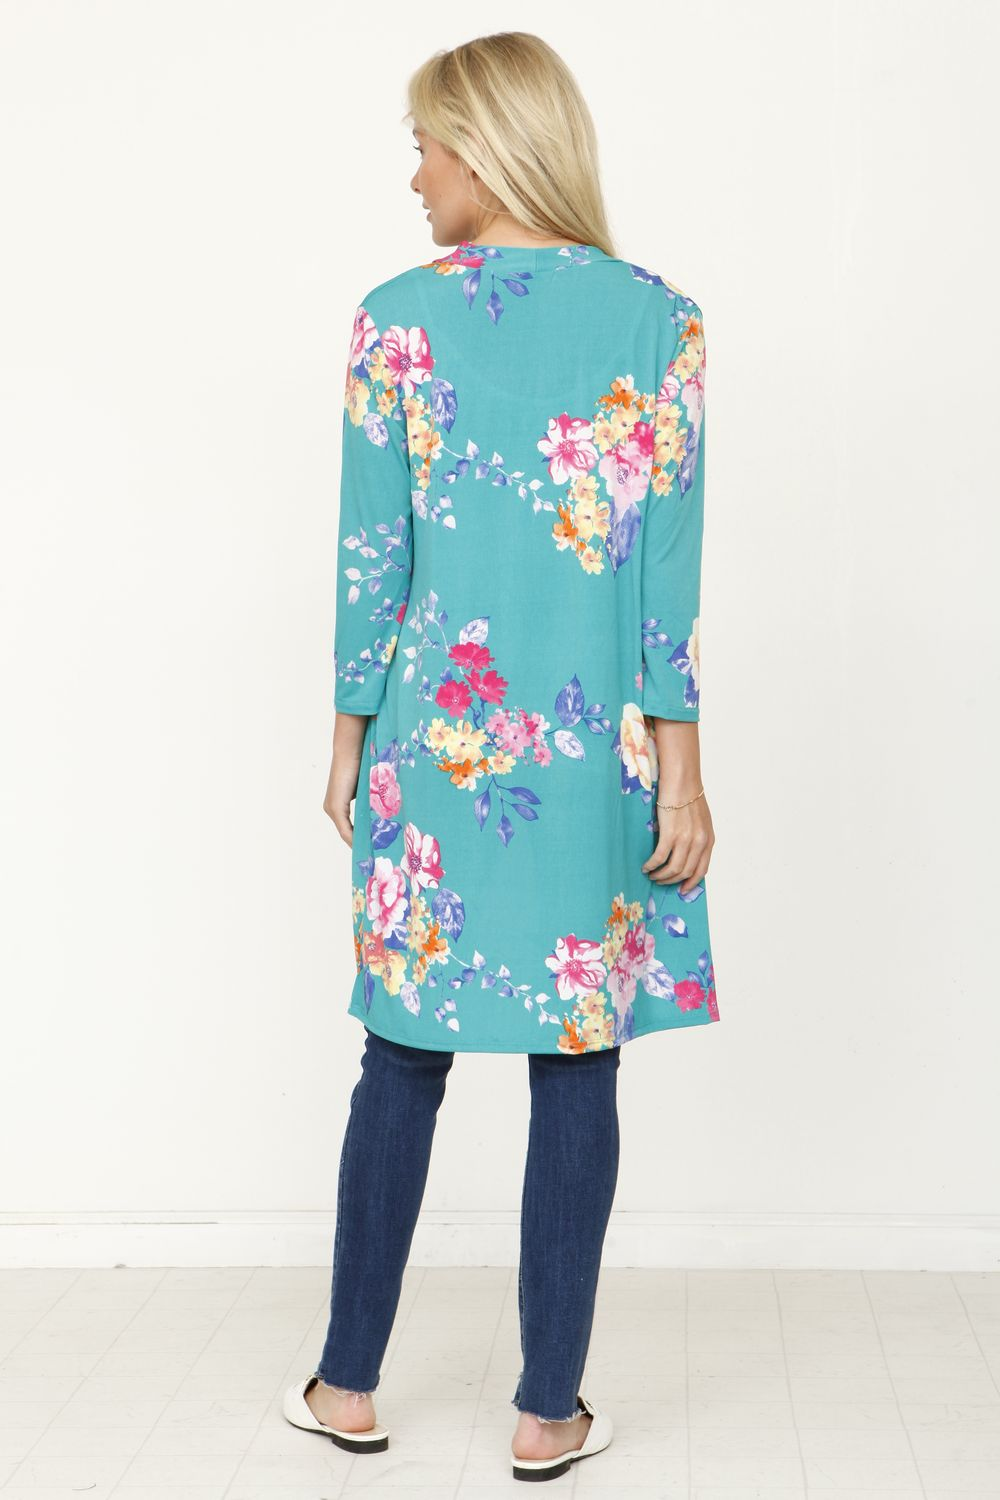 Turquoise Floral 3/4 Sleeve Open Cardigan